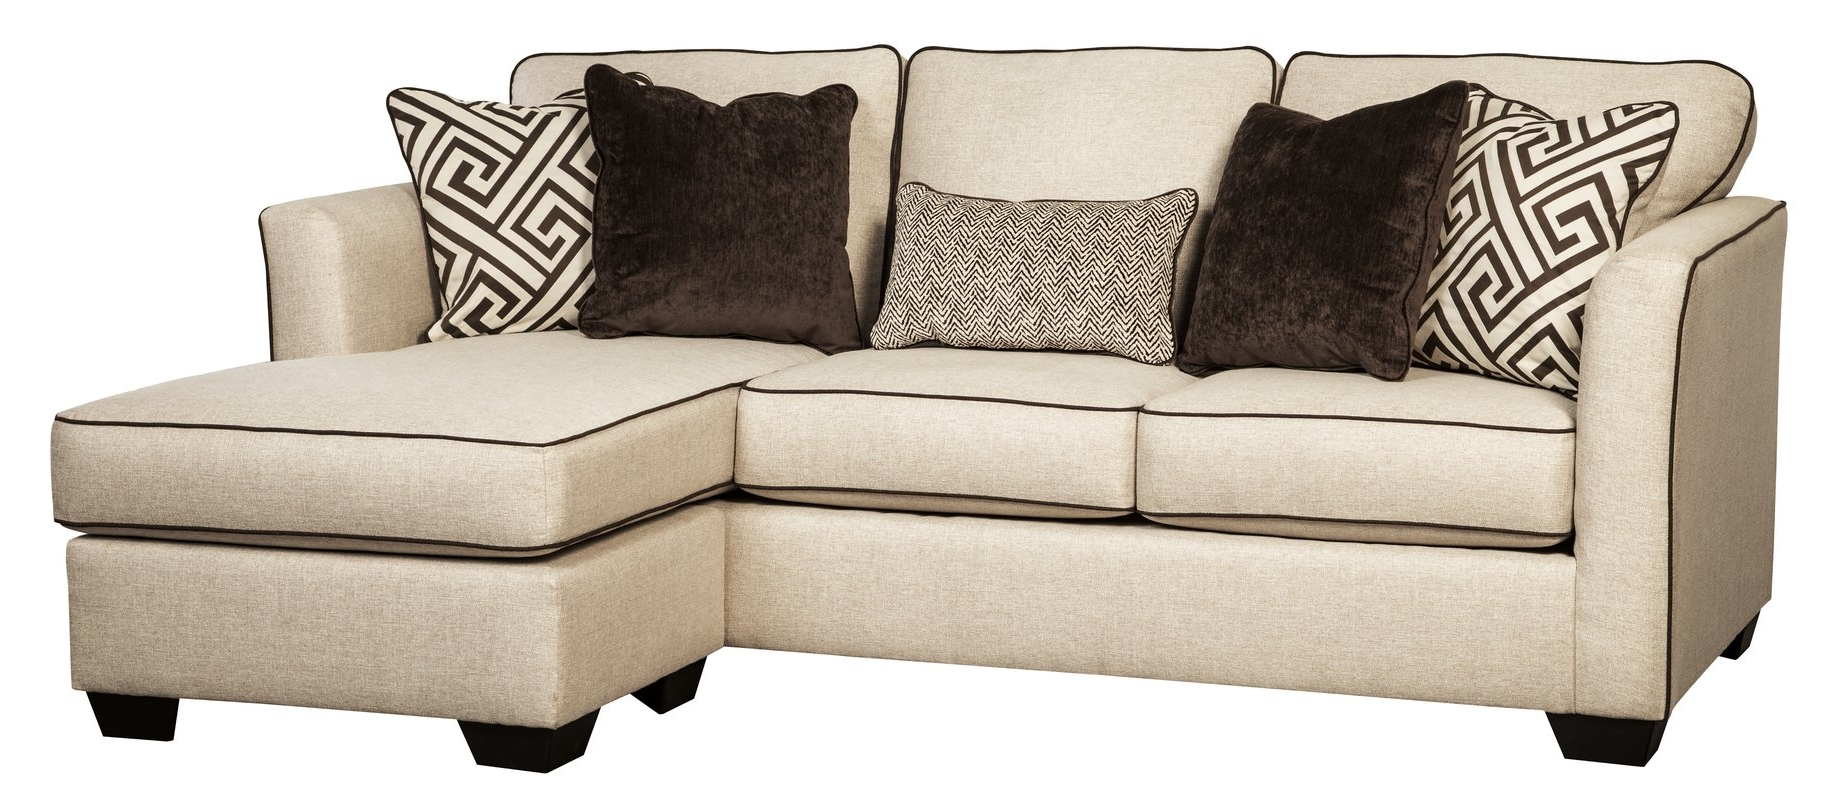 Wayfair Throughout Well Known Sleeper Sofas With Chaise (View 14 of 15)